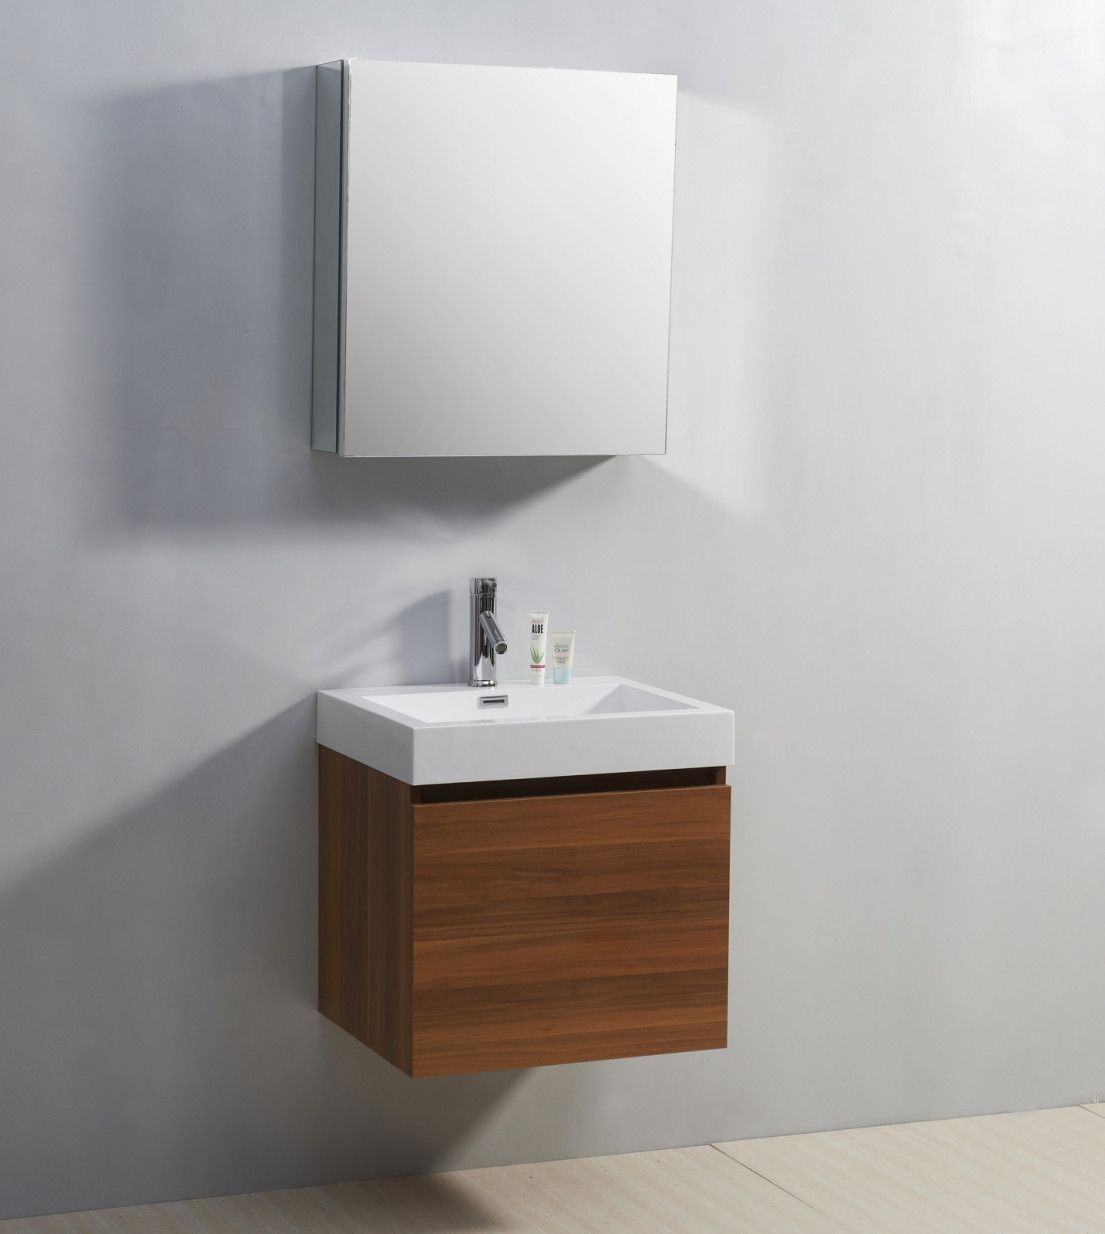 Affordable modern small bathroom vanities ideas 42 - Round Decor